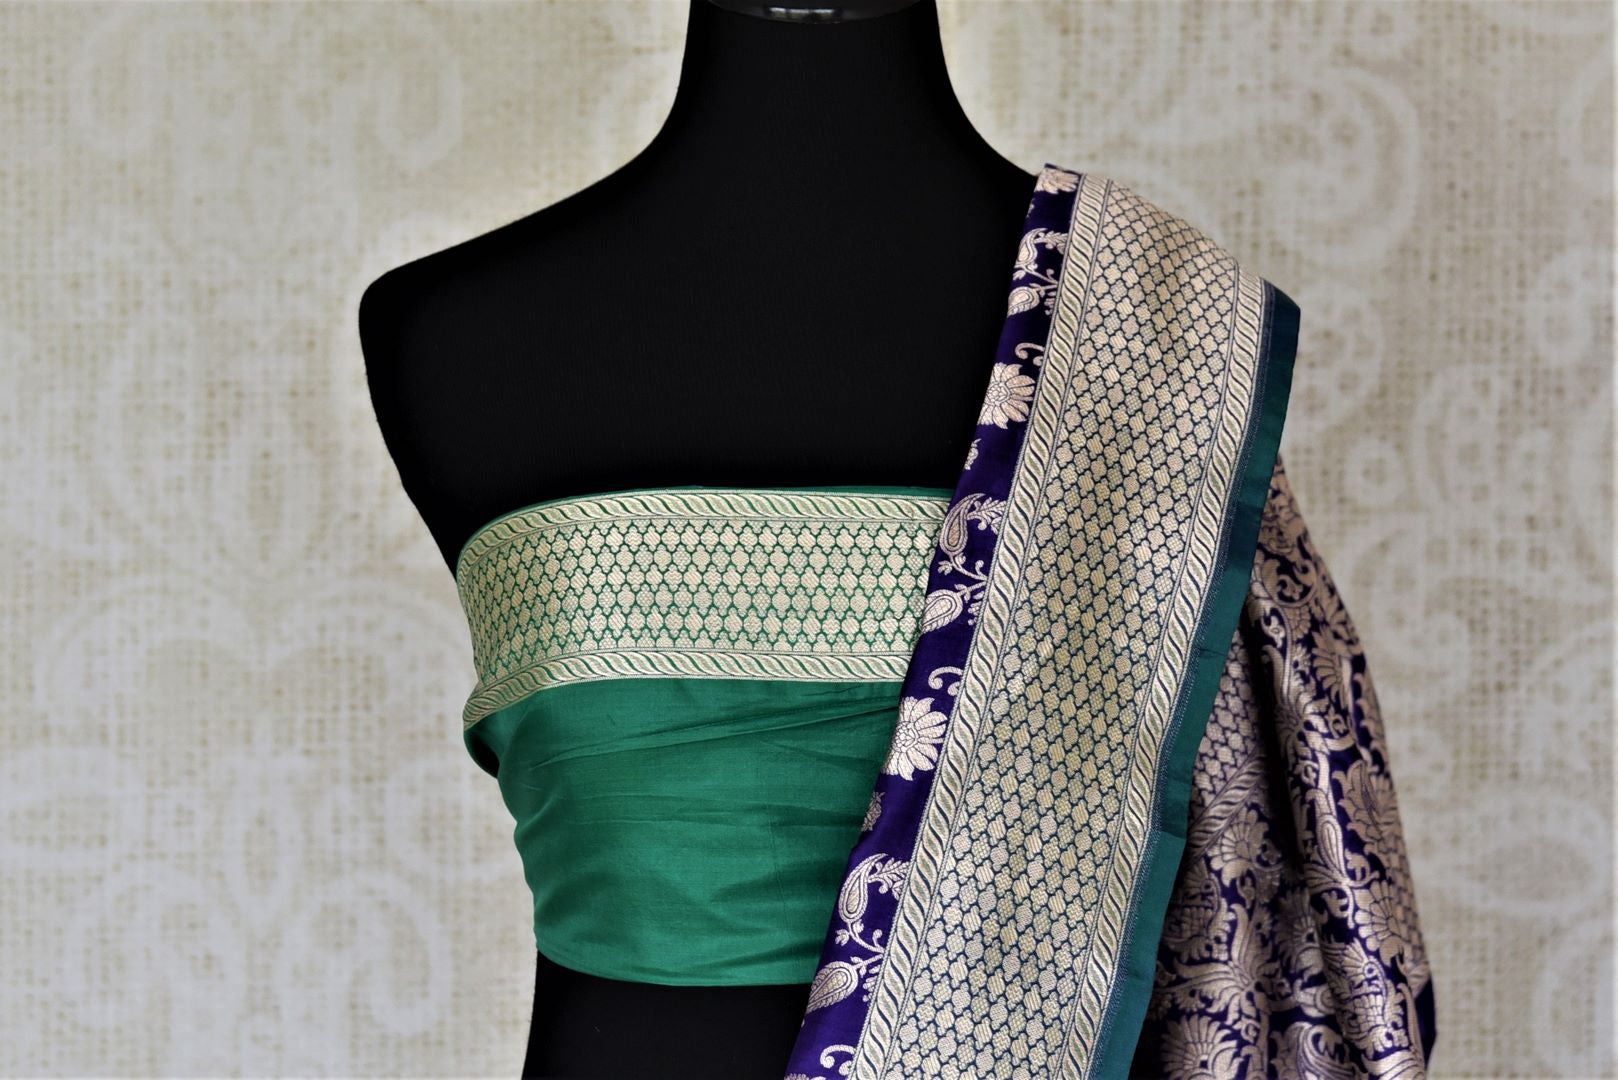 Shop stunning light blue Banarasi silk saree online in USA with silver zari buta and zari border. Keep it elegant with zari work sarees, Banarasi silk sarees, handwoven sarees from Pure Elegance Indian fashion boutique in USA. We bring a especially curated collection of ethnic sarees for Indian women in USA under one roof!-blouse